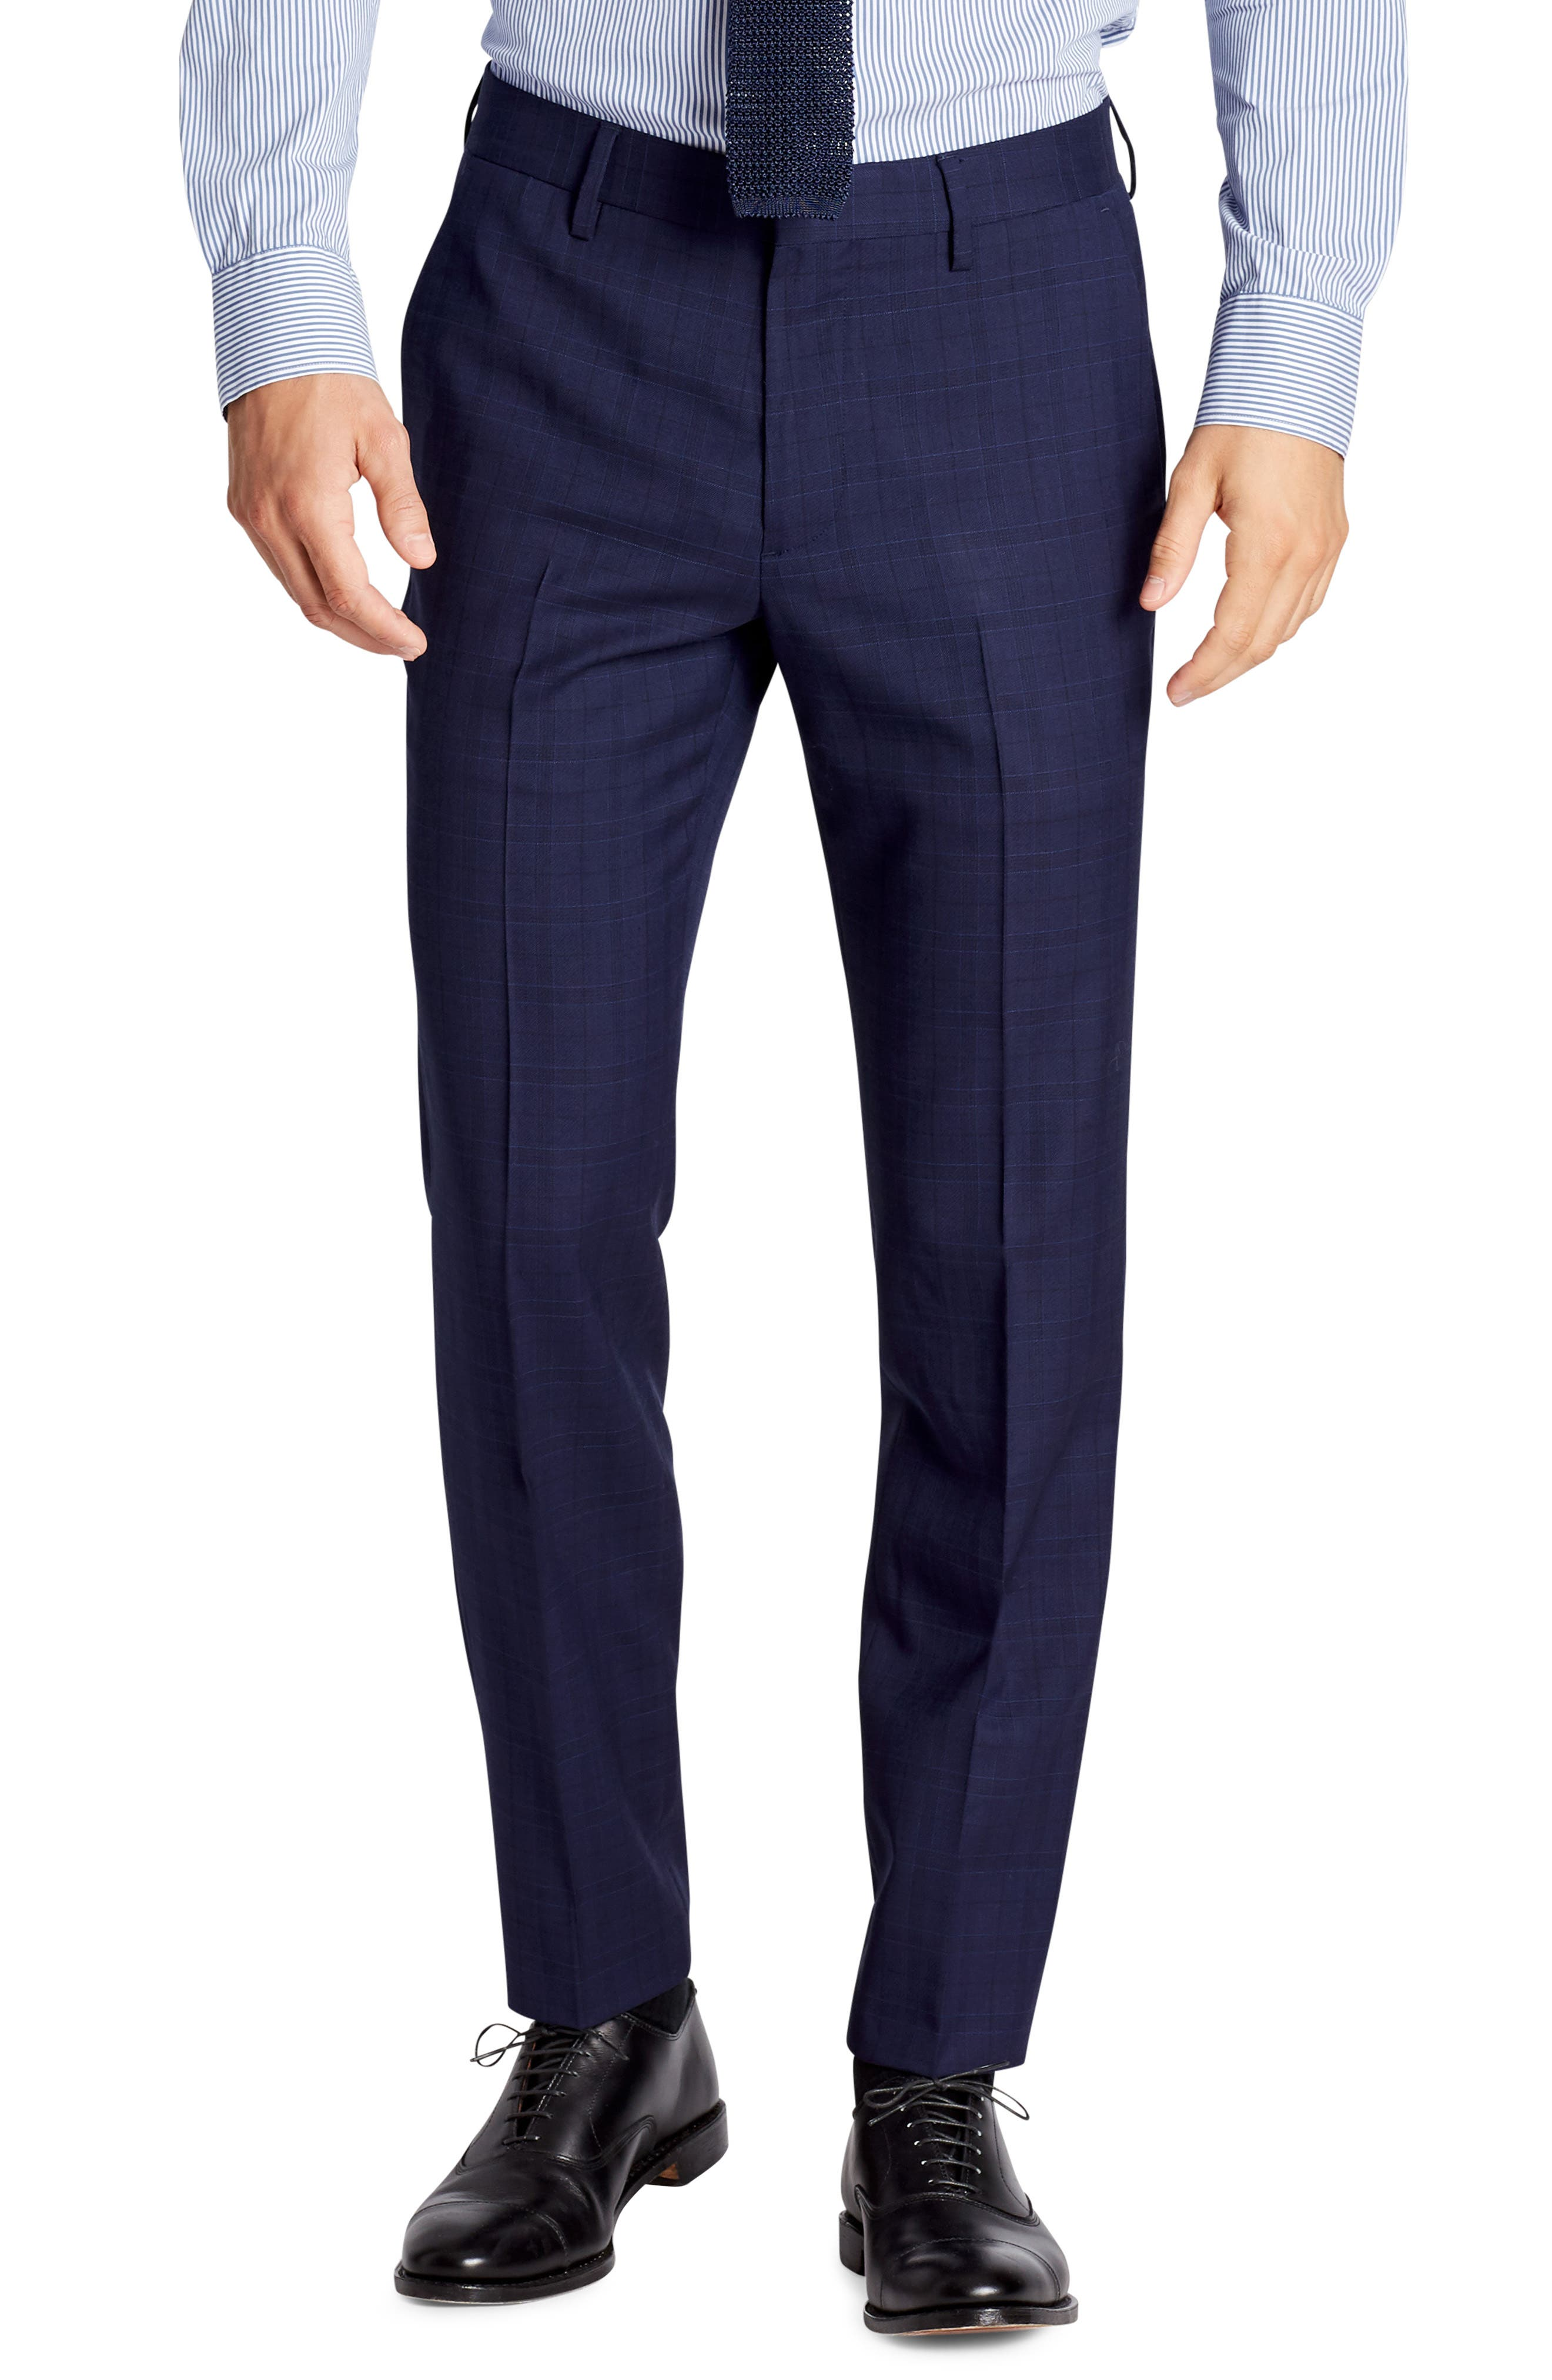 Jetsetter Flat Front Plaid Stretch Wool Trousers,                         Main,                         color, Blue Plaid